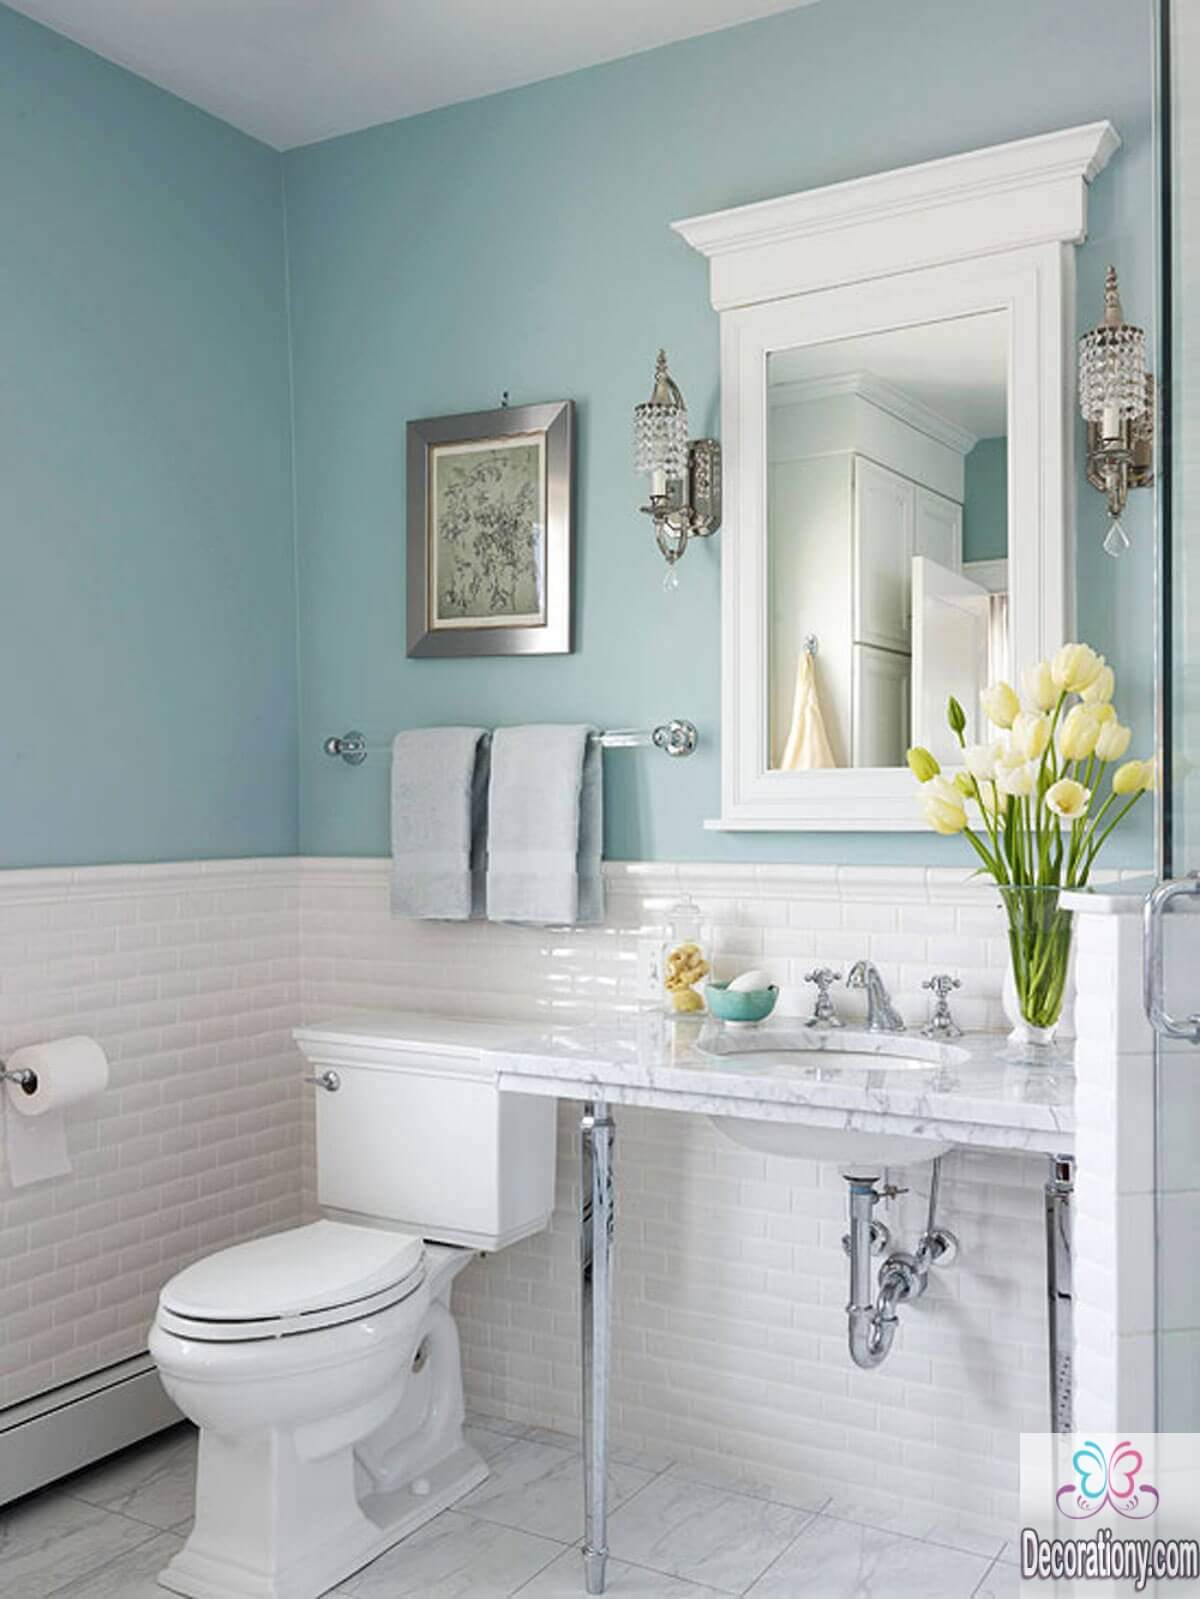 10 affordable colors for small bathrooms decoration y for Bathroom styles